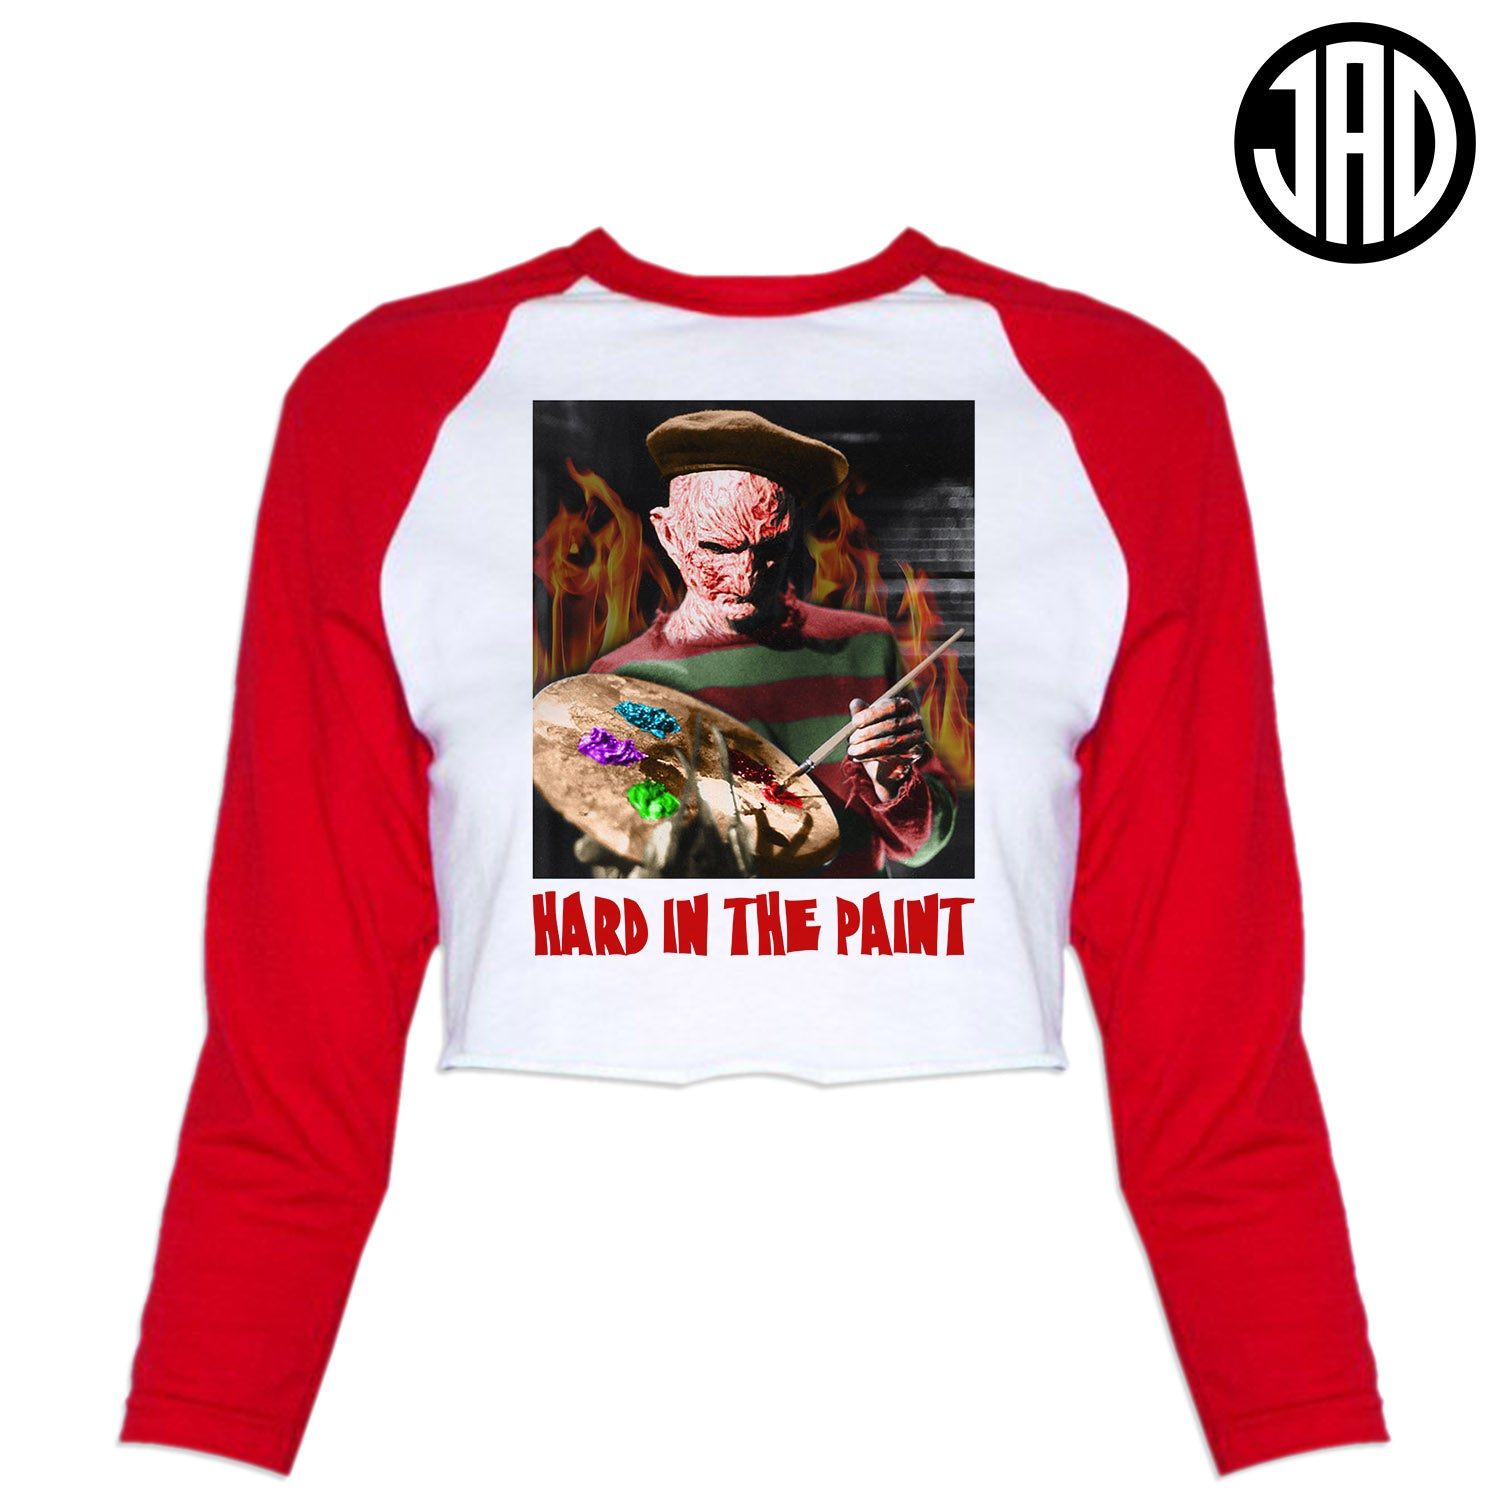 Hard In The Paint - Women's Cropped Baseball Tee